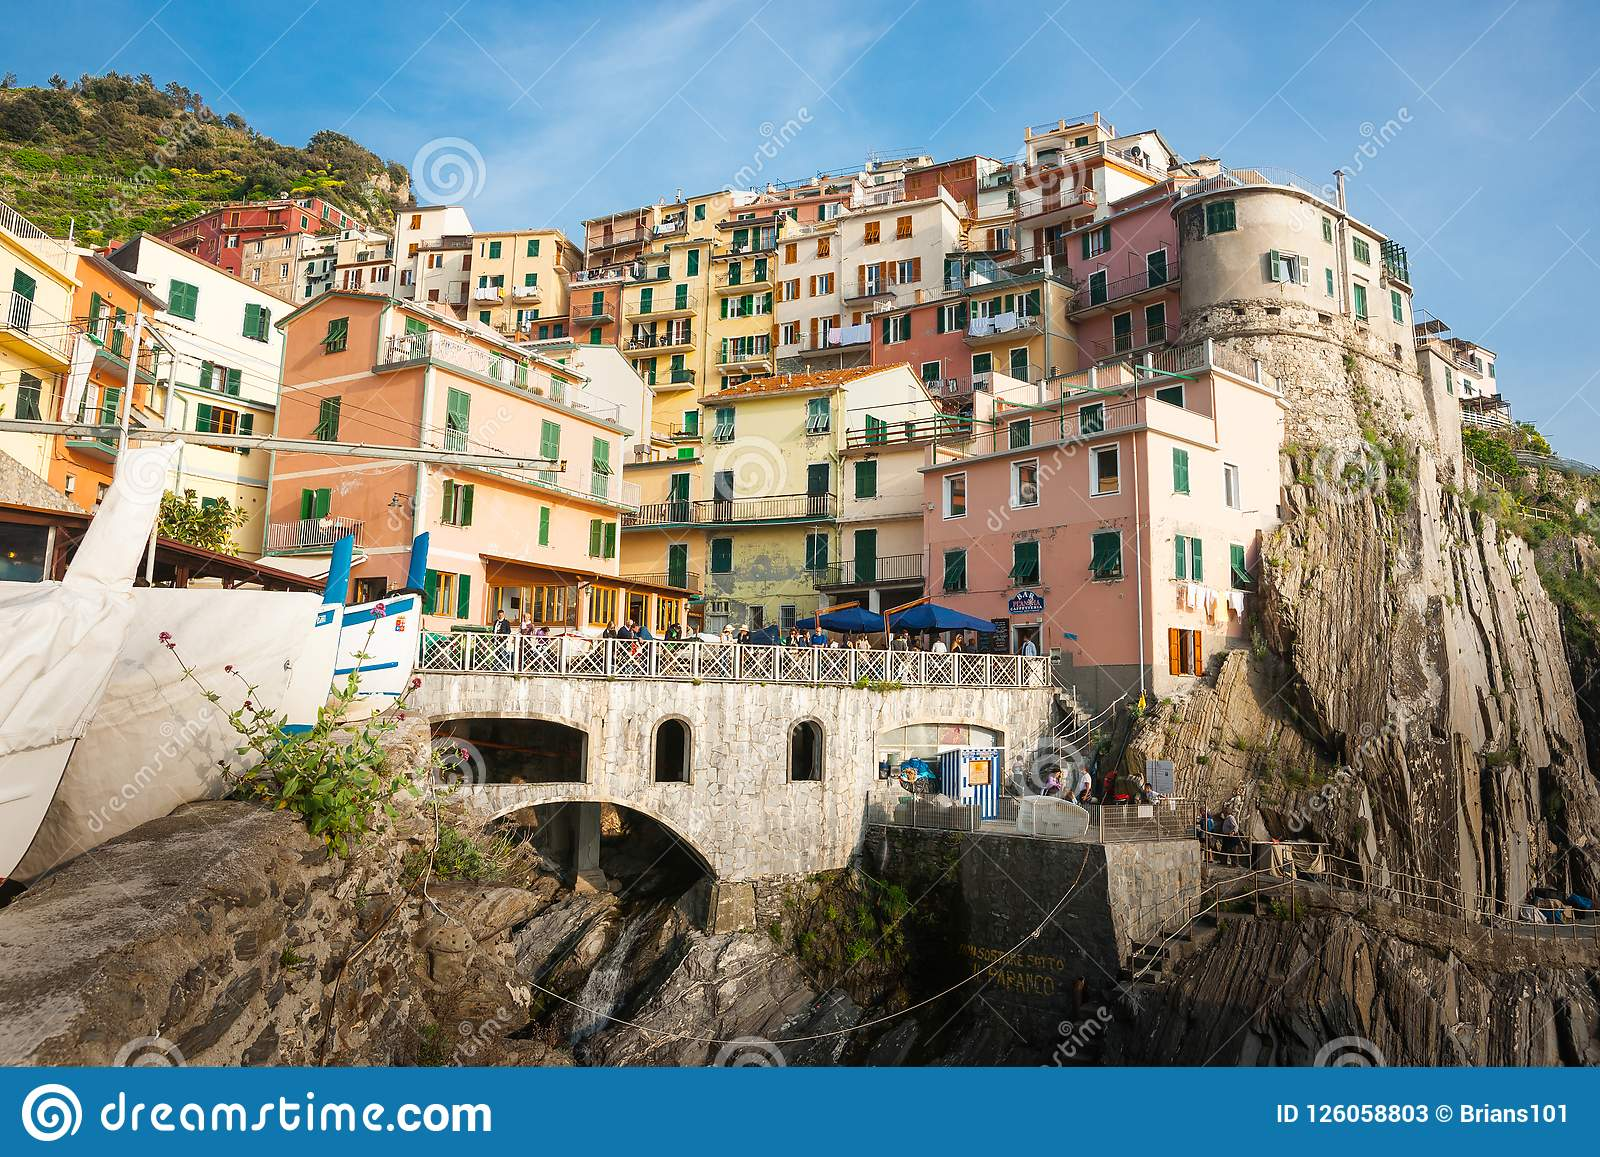 boats-pulled-up-below-steep-colored-hillside-village-buildings-manarola-italy-april-built-rock-cliff-face-cinque-terre-126058803.jpg